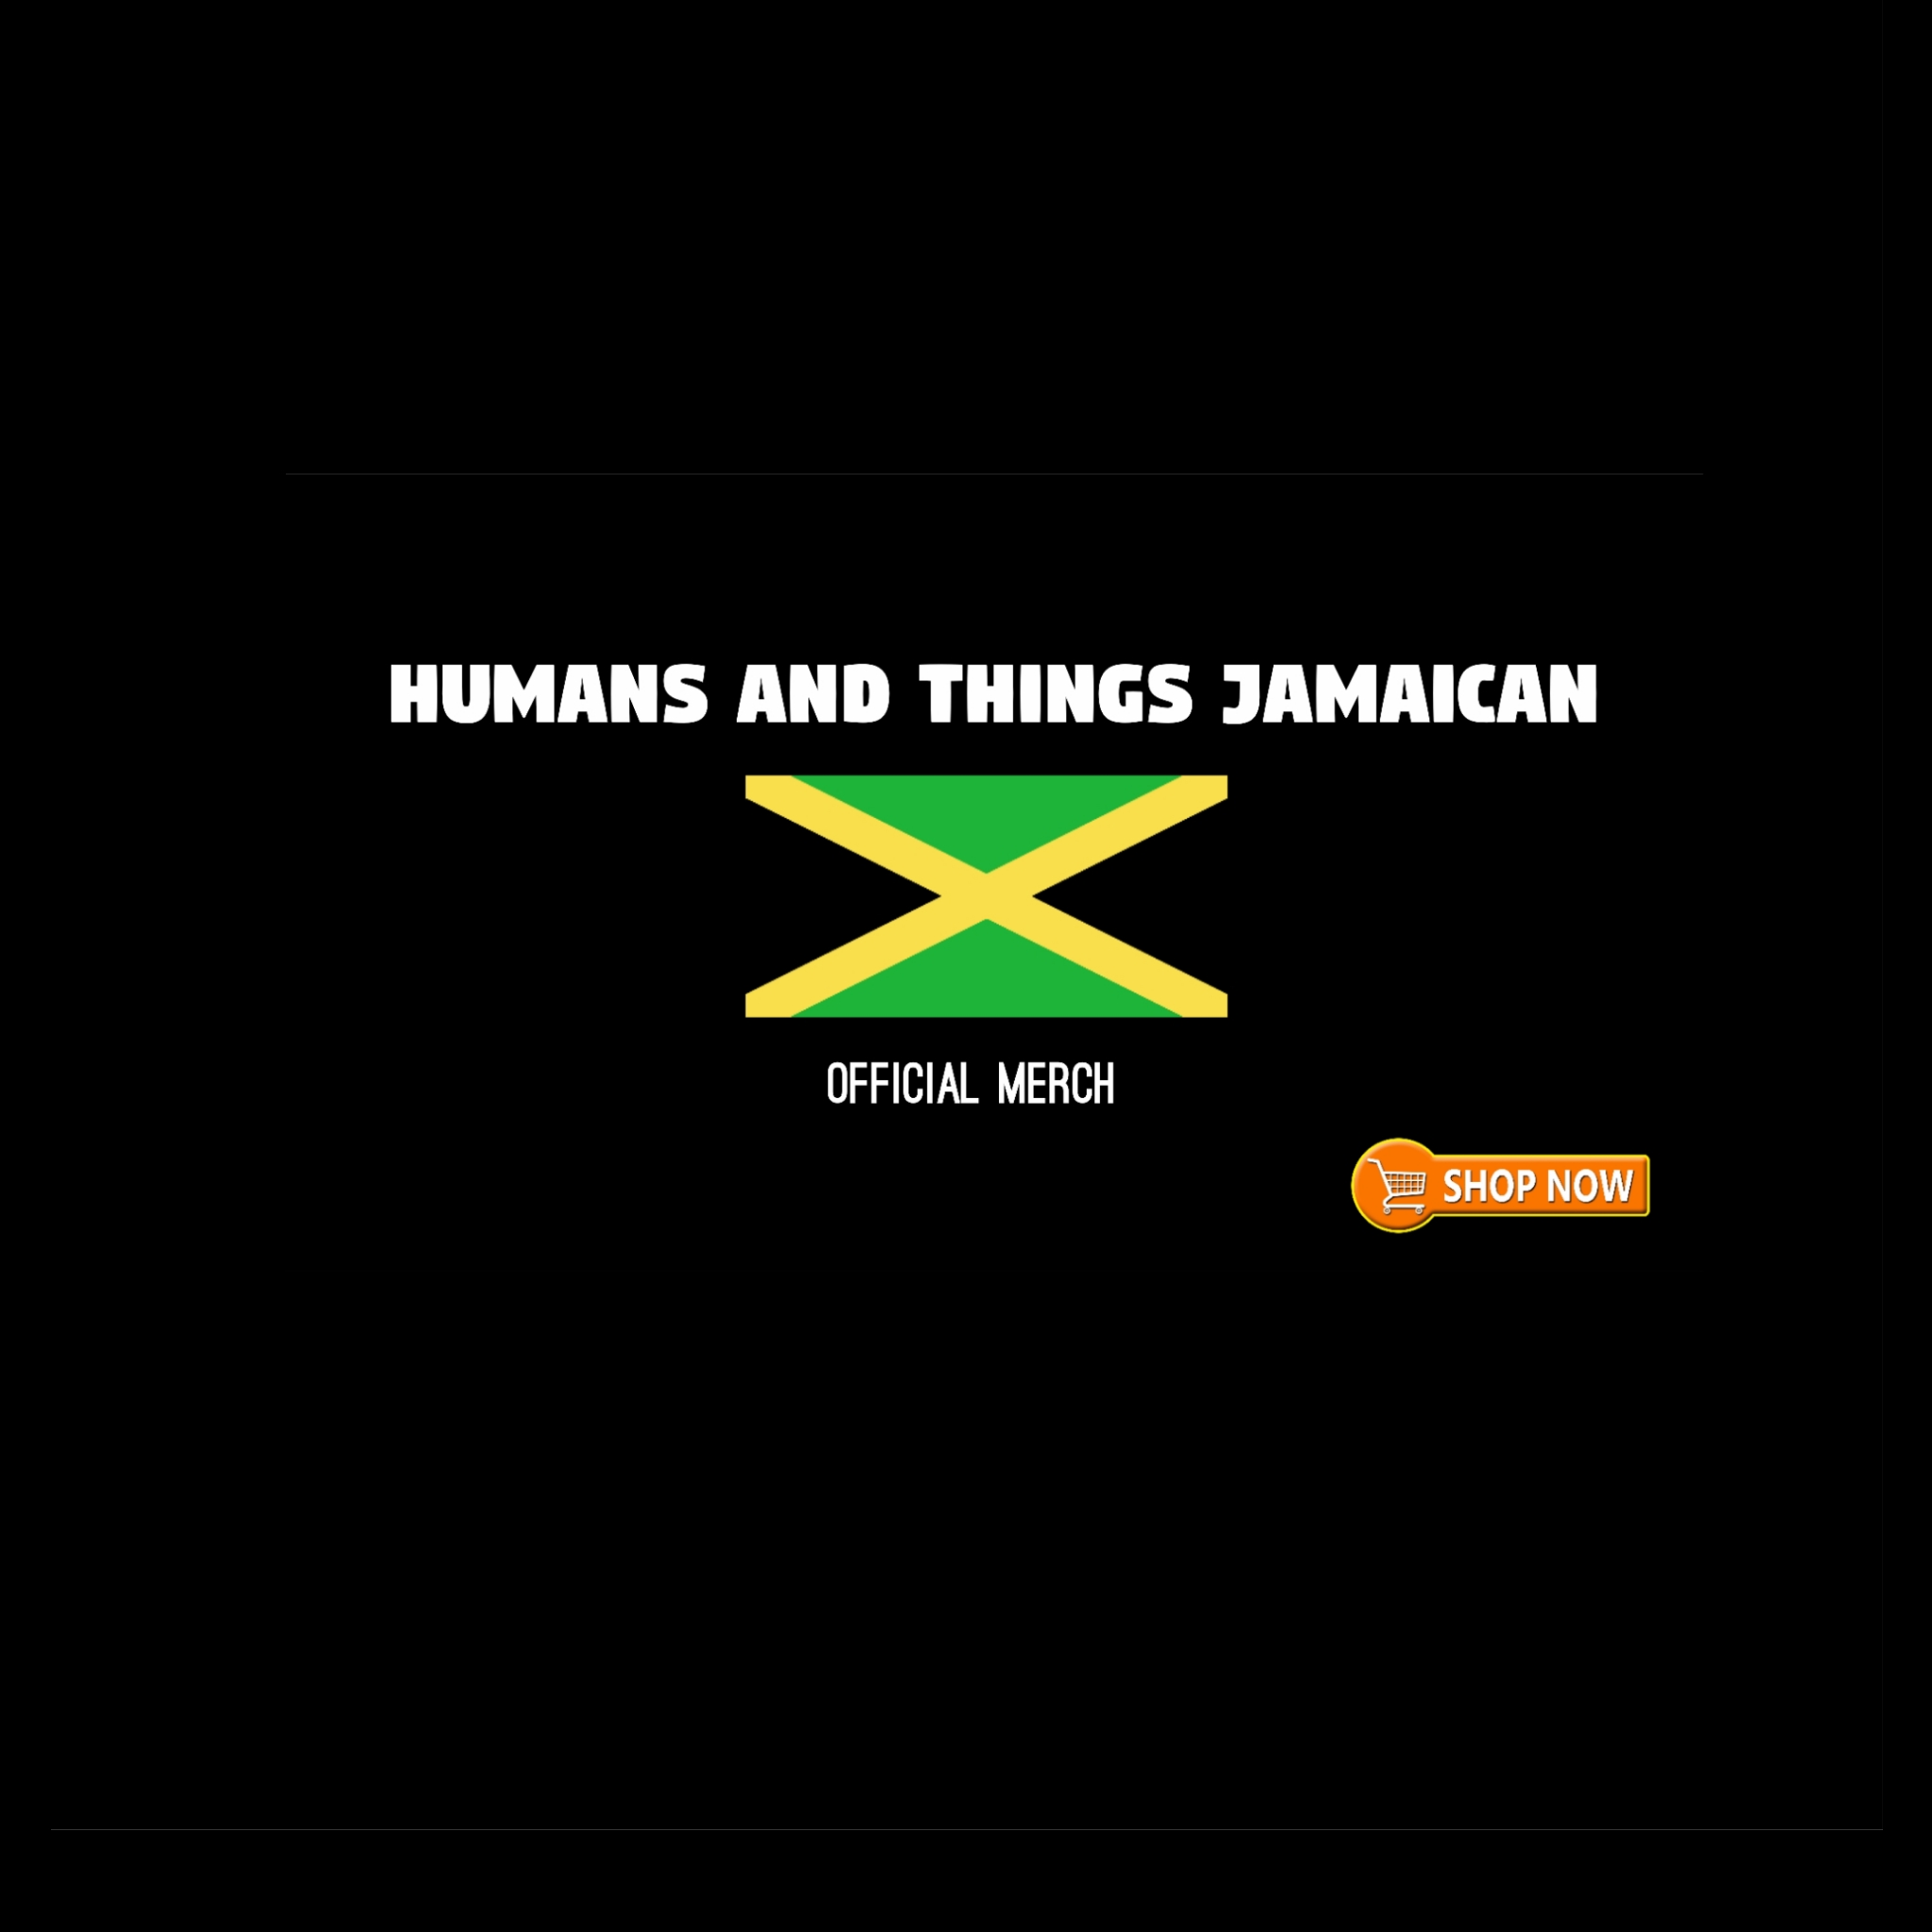 HUMANS AND THINGS JAMAICAN | Teespring